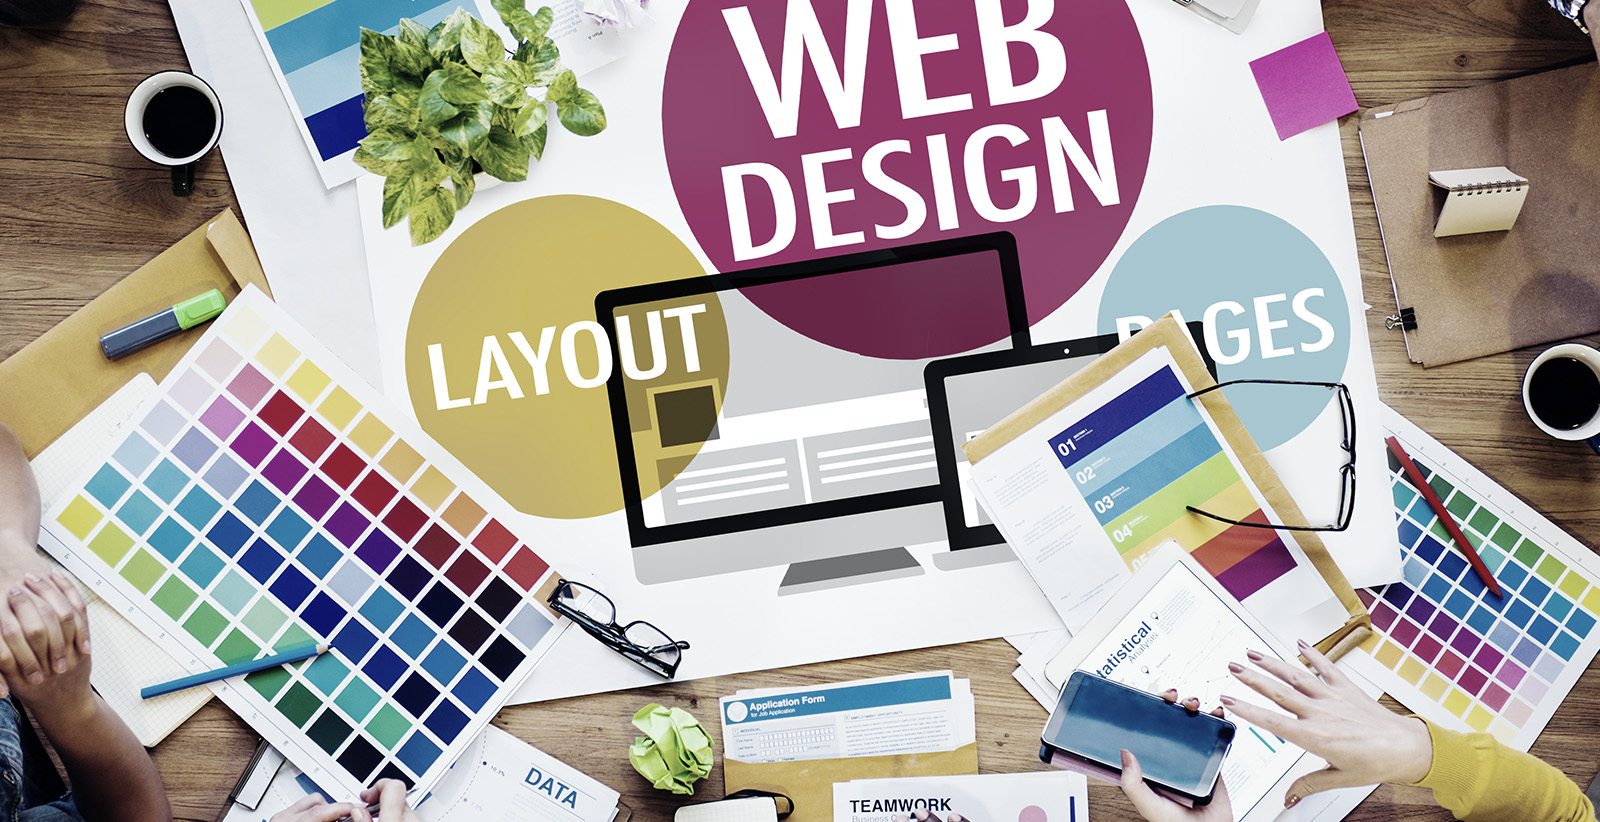 Offshore web design and development